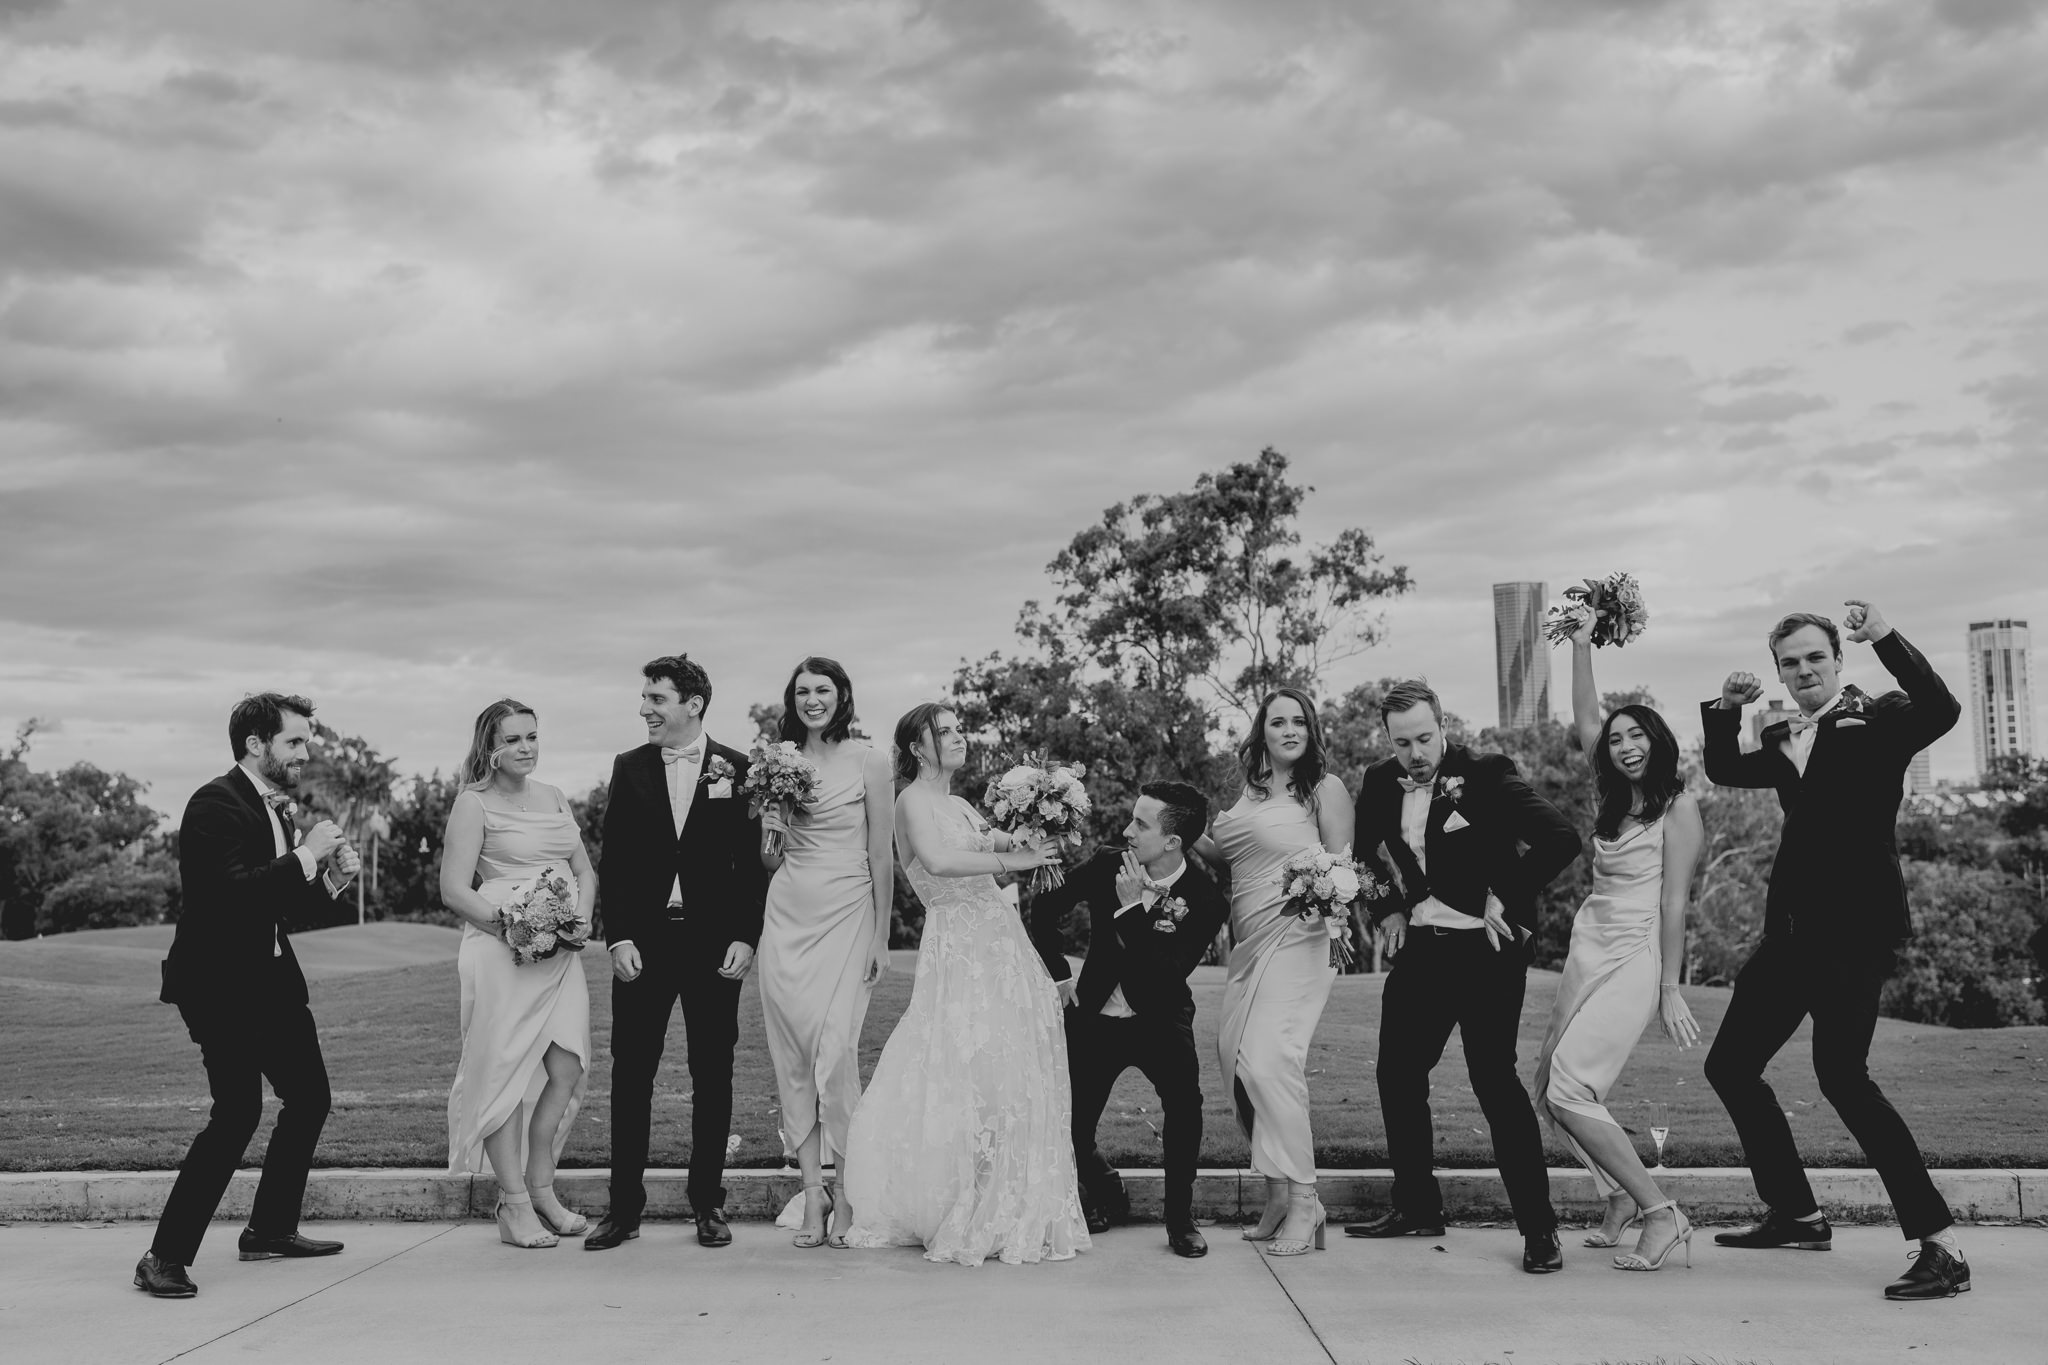 A bridal party dancing together on a golf course in front of a city skyline